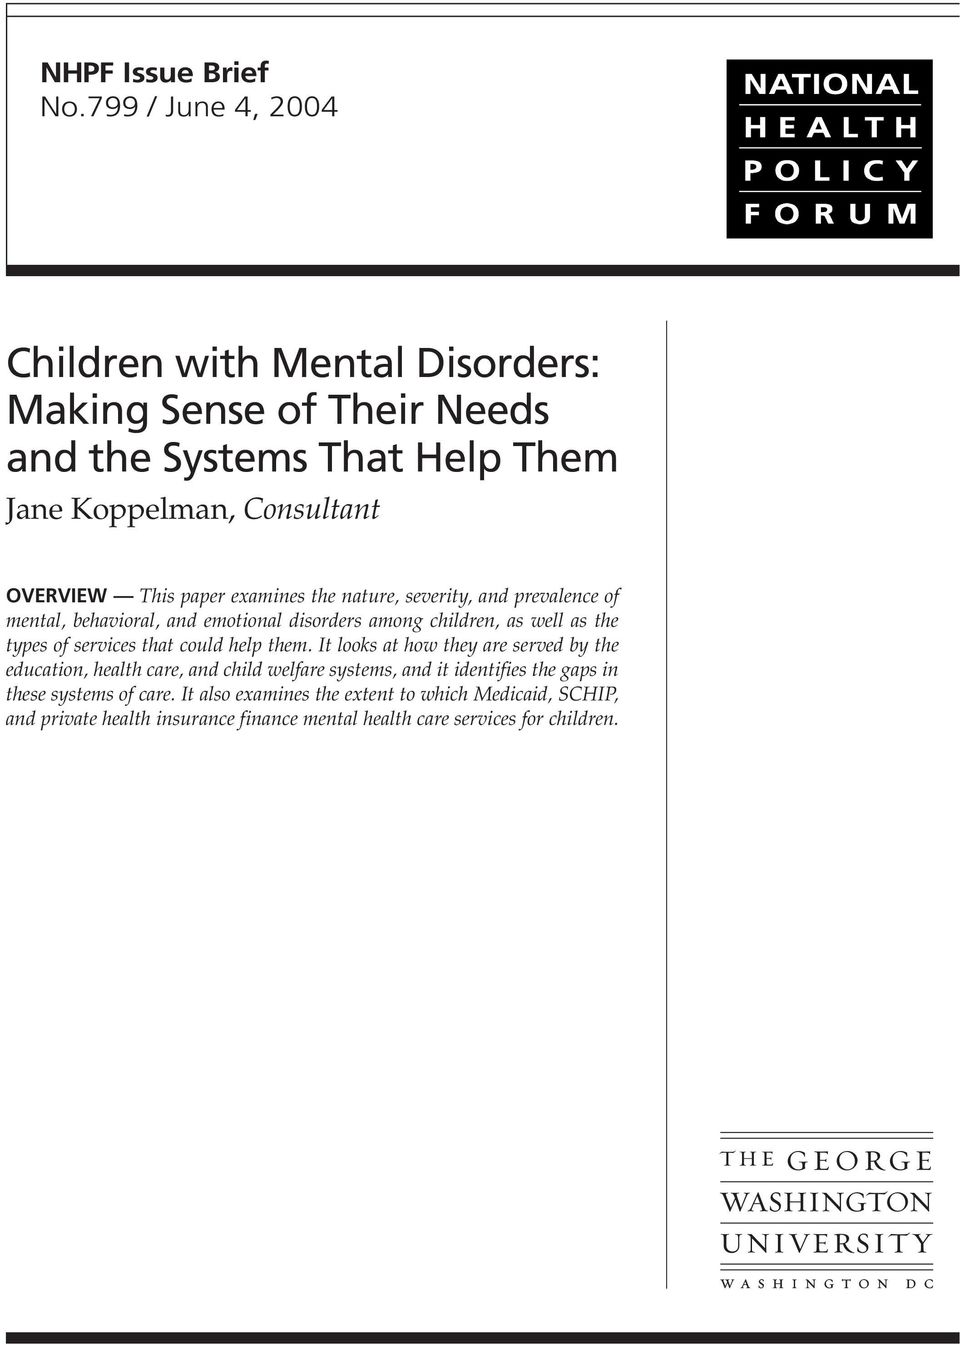 paper examines the nature, severity, and prevalence of mental, behavioral, and emotional disorders among children, as well as the types of services that